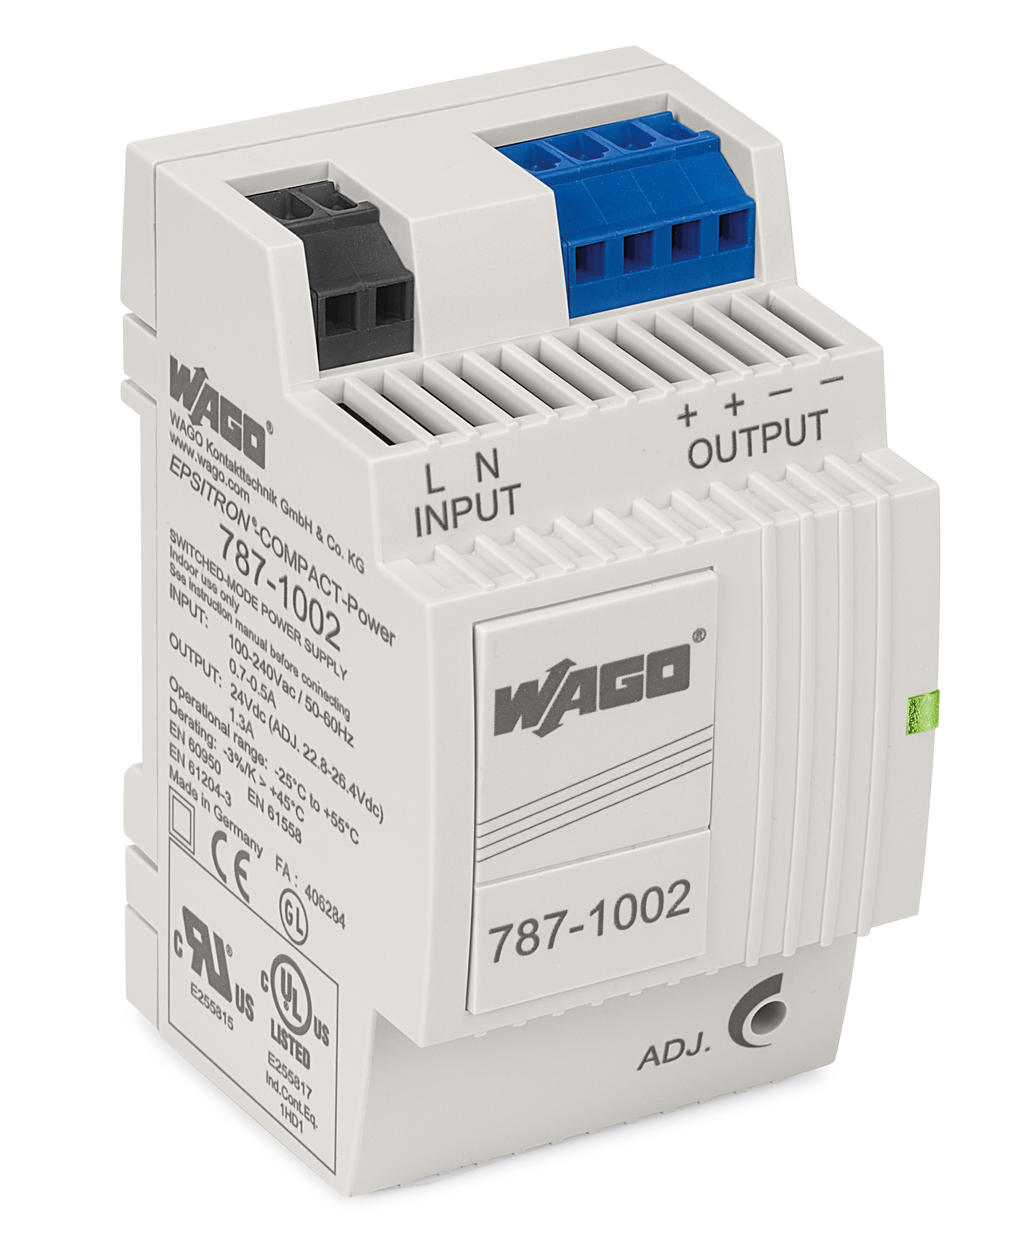 Wago Switched Mode Power Supply 787 1002 Topic Relays And Loaded From Same Source Read 2215 Epsitron Compact 1 Phase 24 Vdc Output Voltage 13 A Current